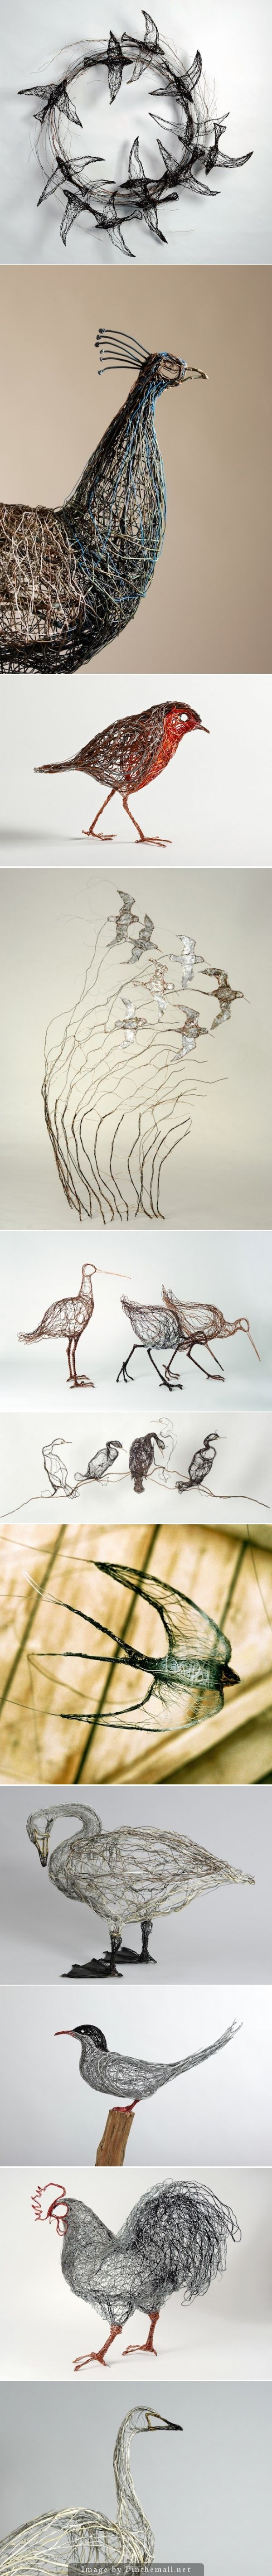 Celia Smith Bird Sculptures